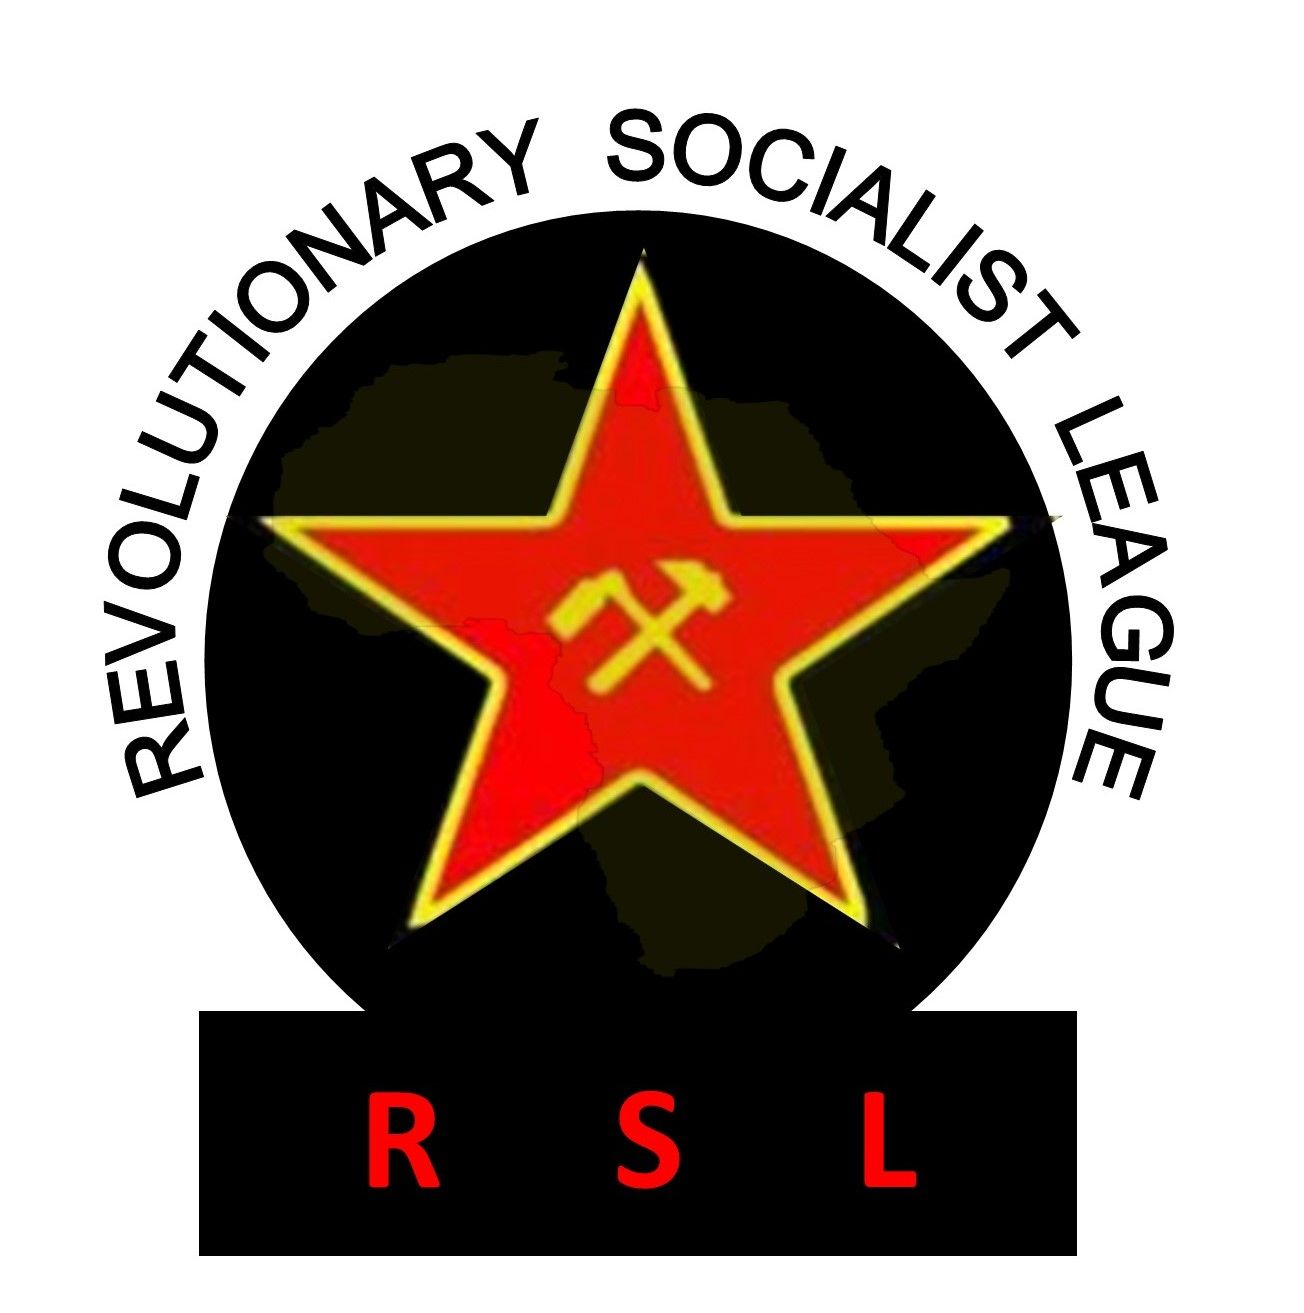 Revolutionary Socialist League